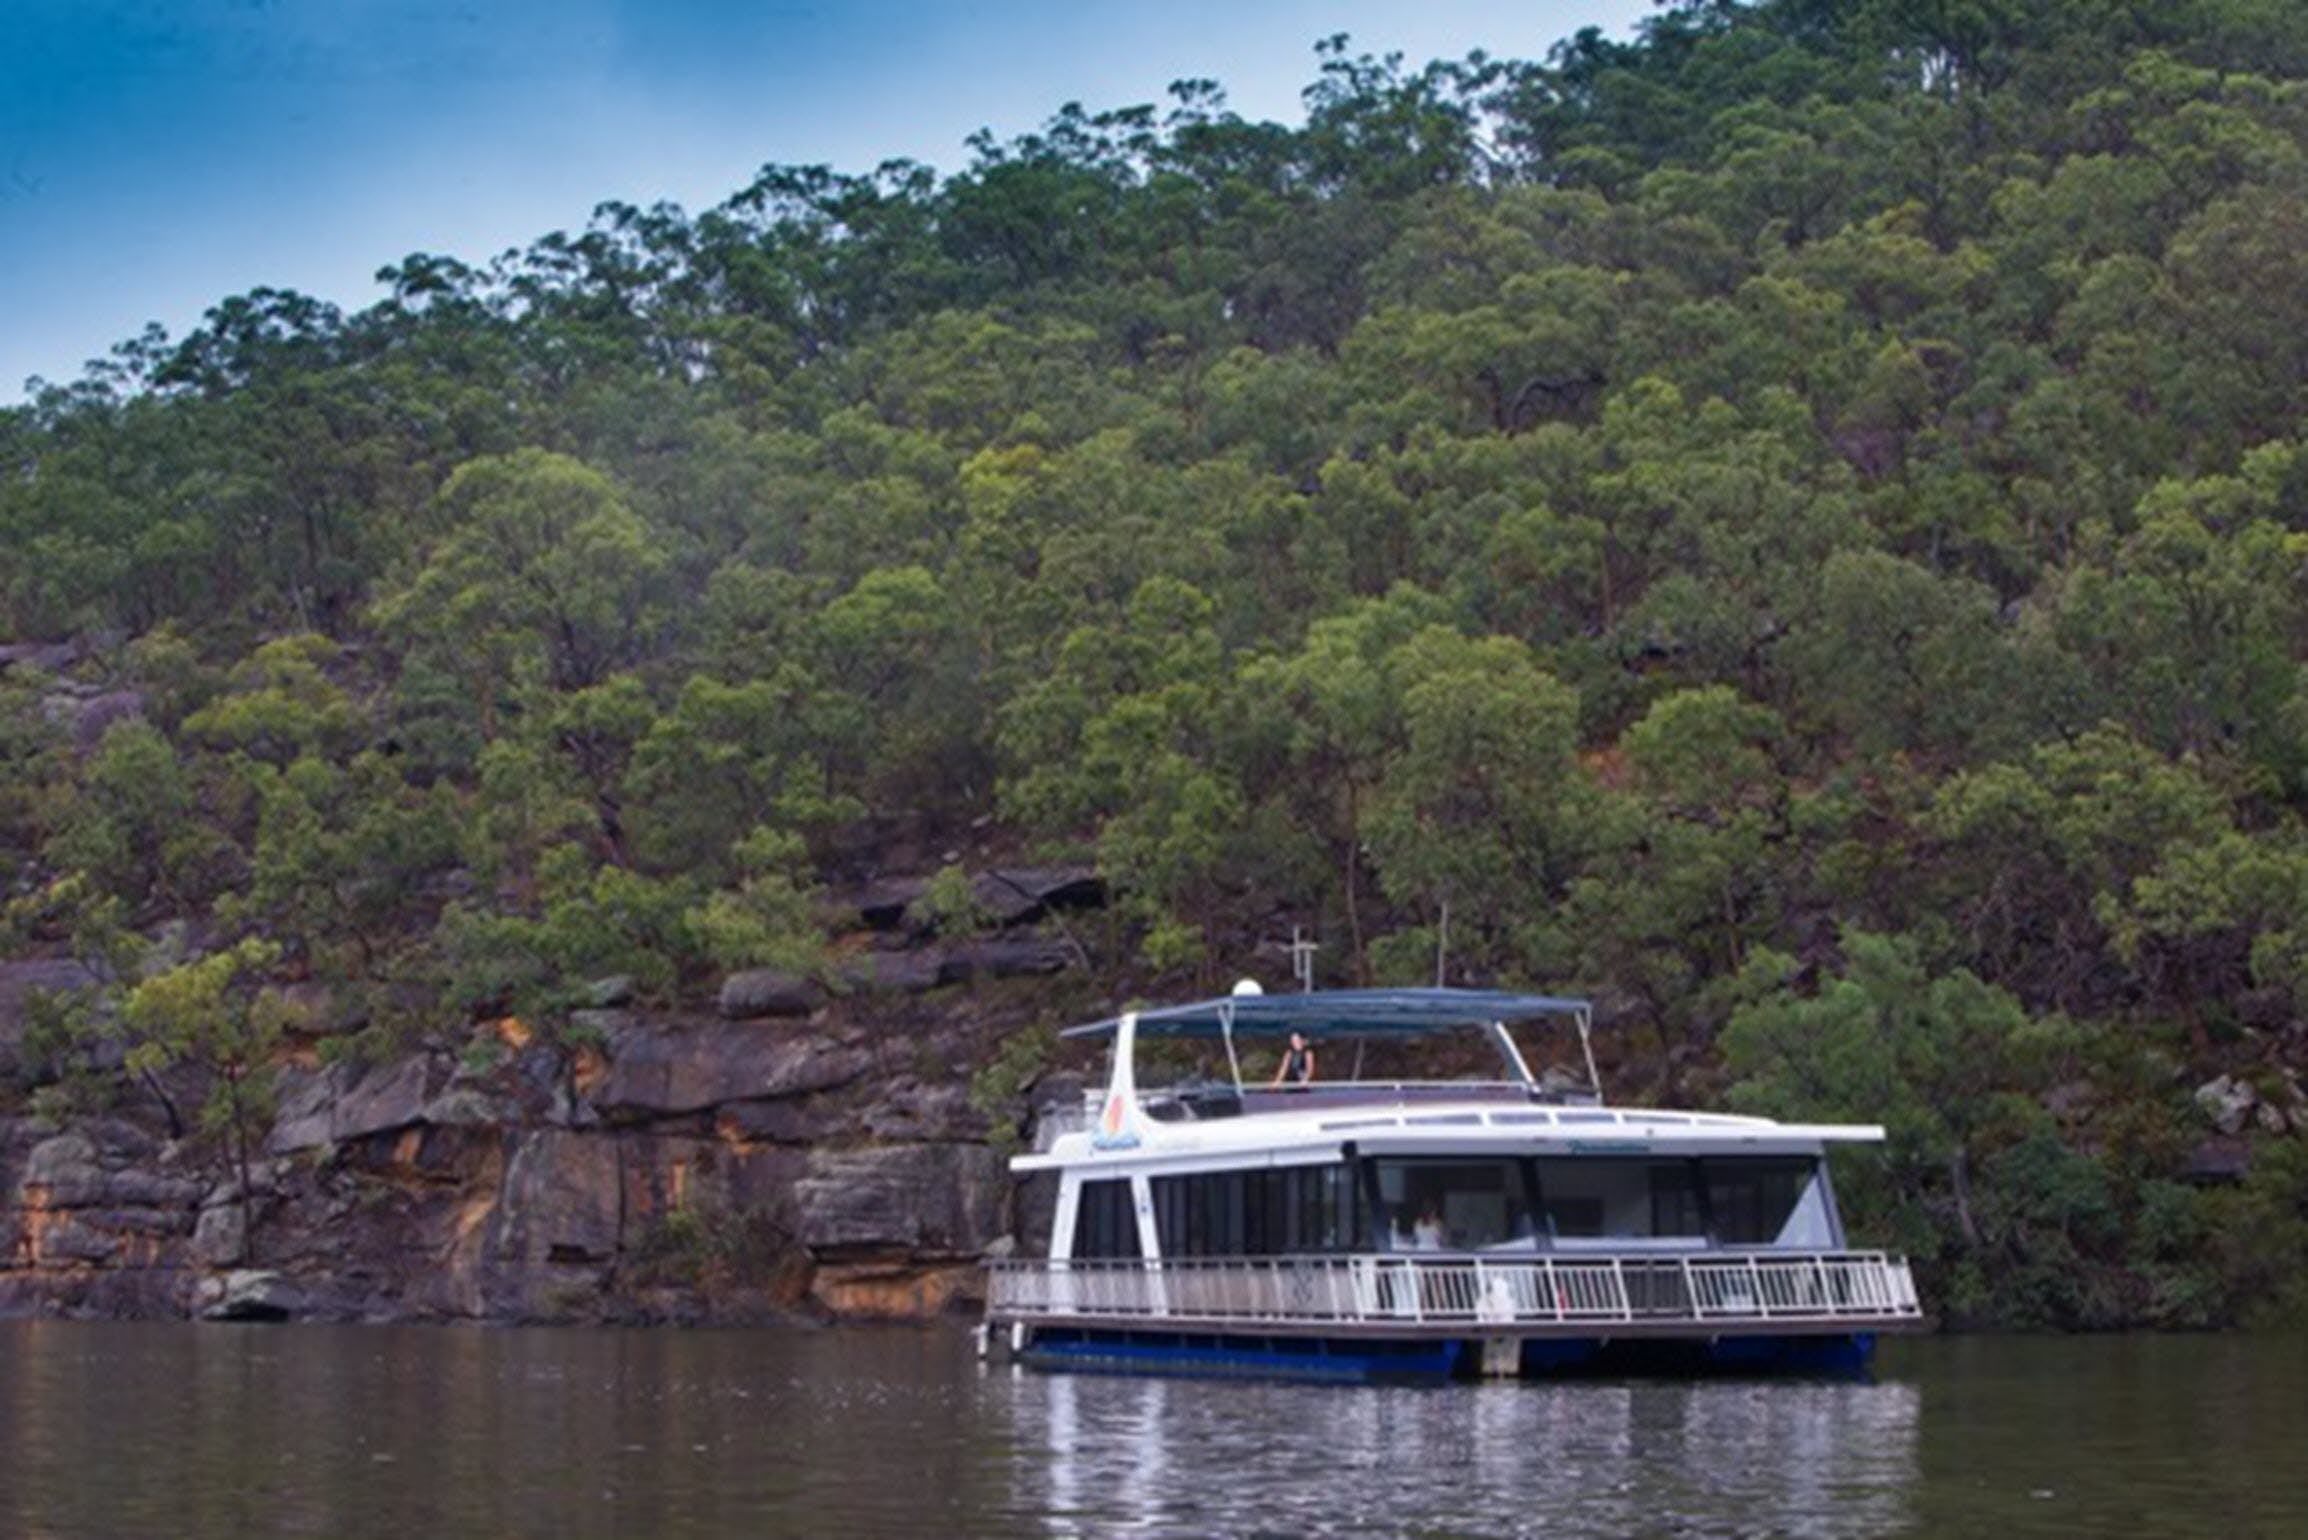 Able Hawkesbury River Houseboats - Kayaks and Dayboats - Accommodation Coffs Harbour